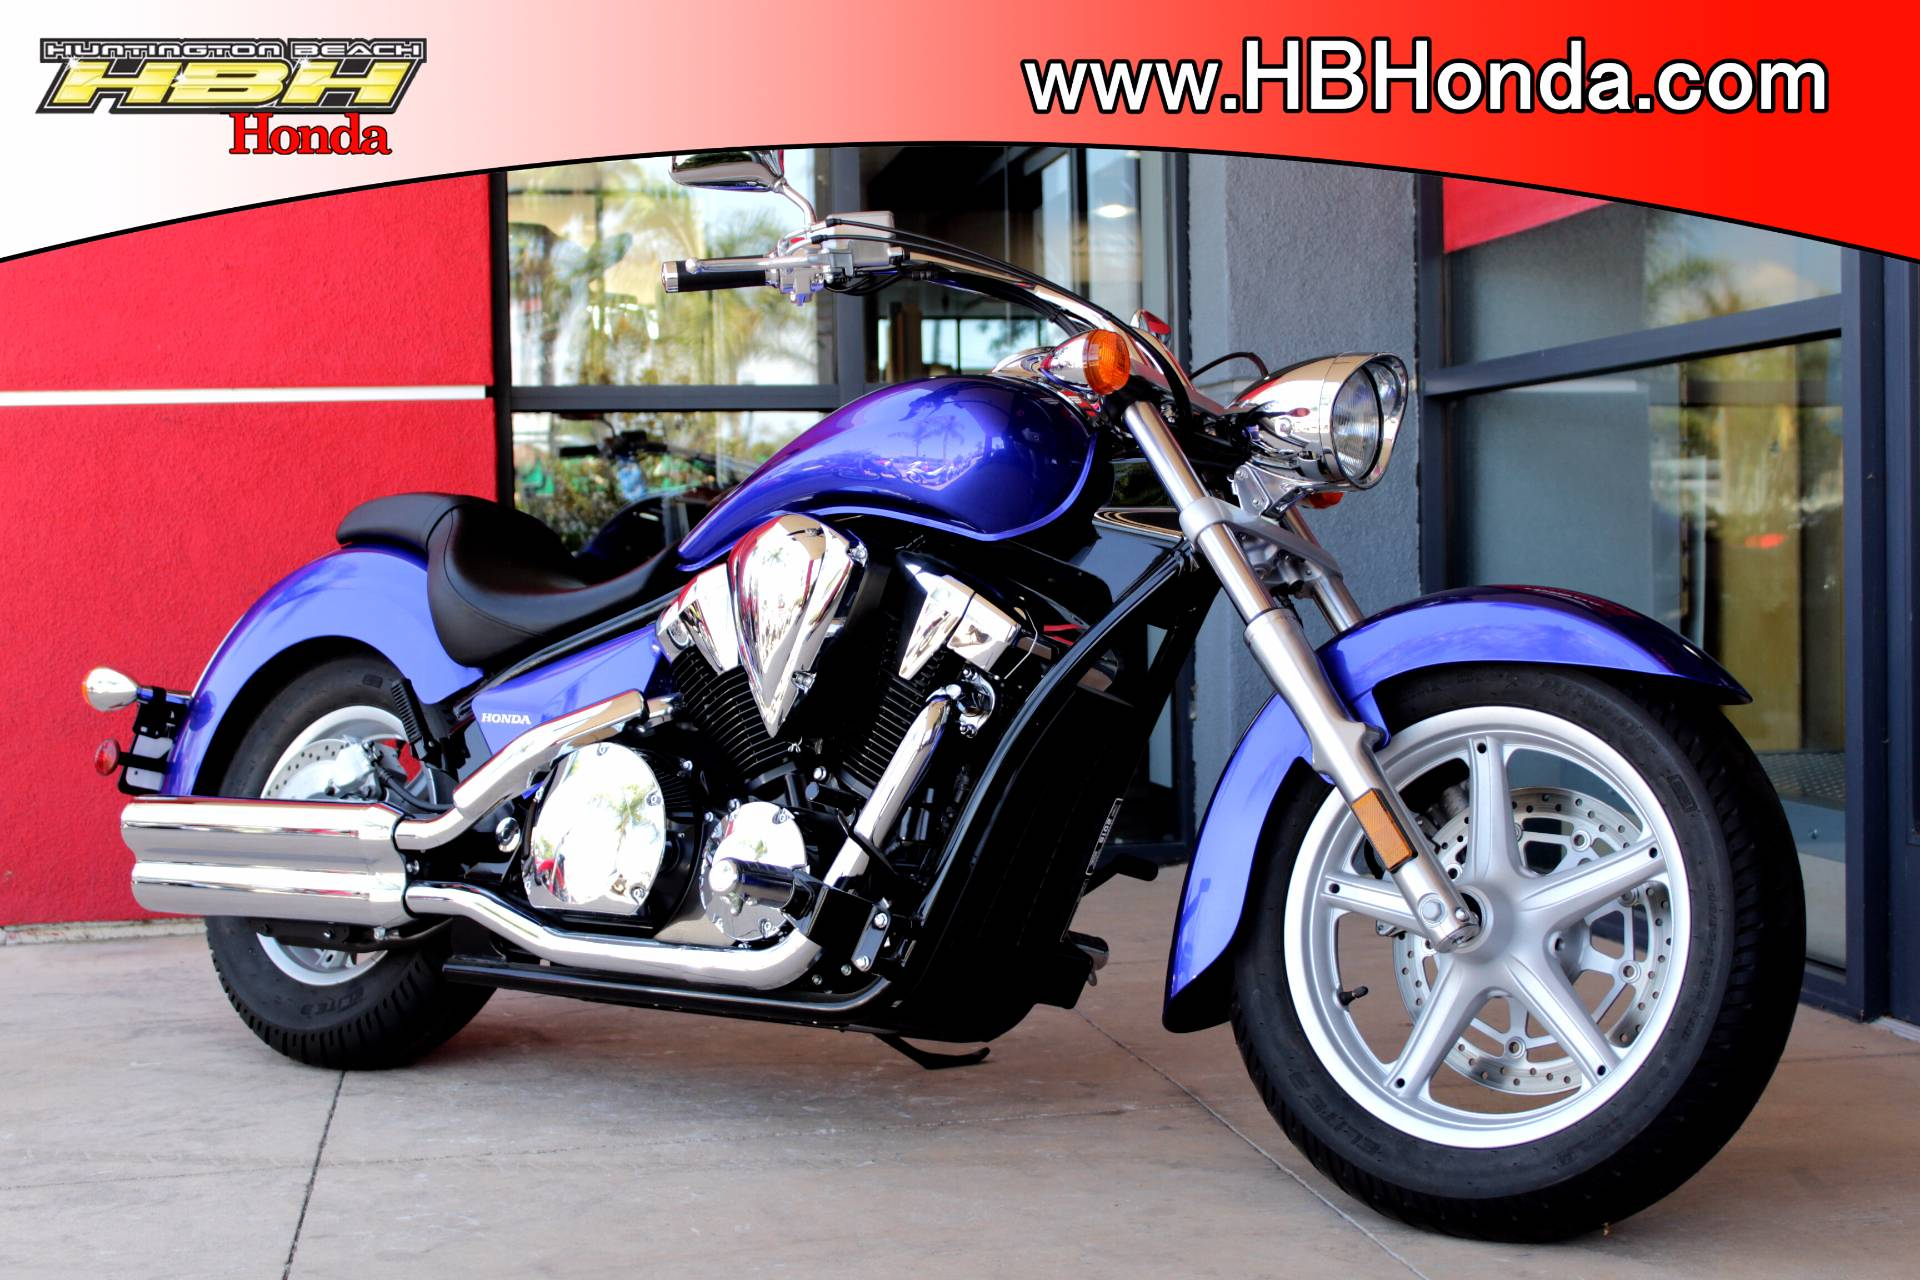 2016 Honda Stateline in Huntington Beach, California